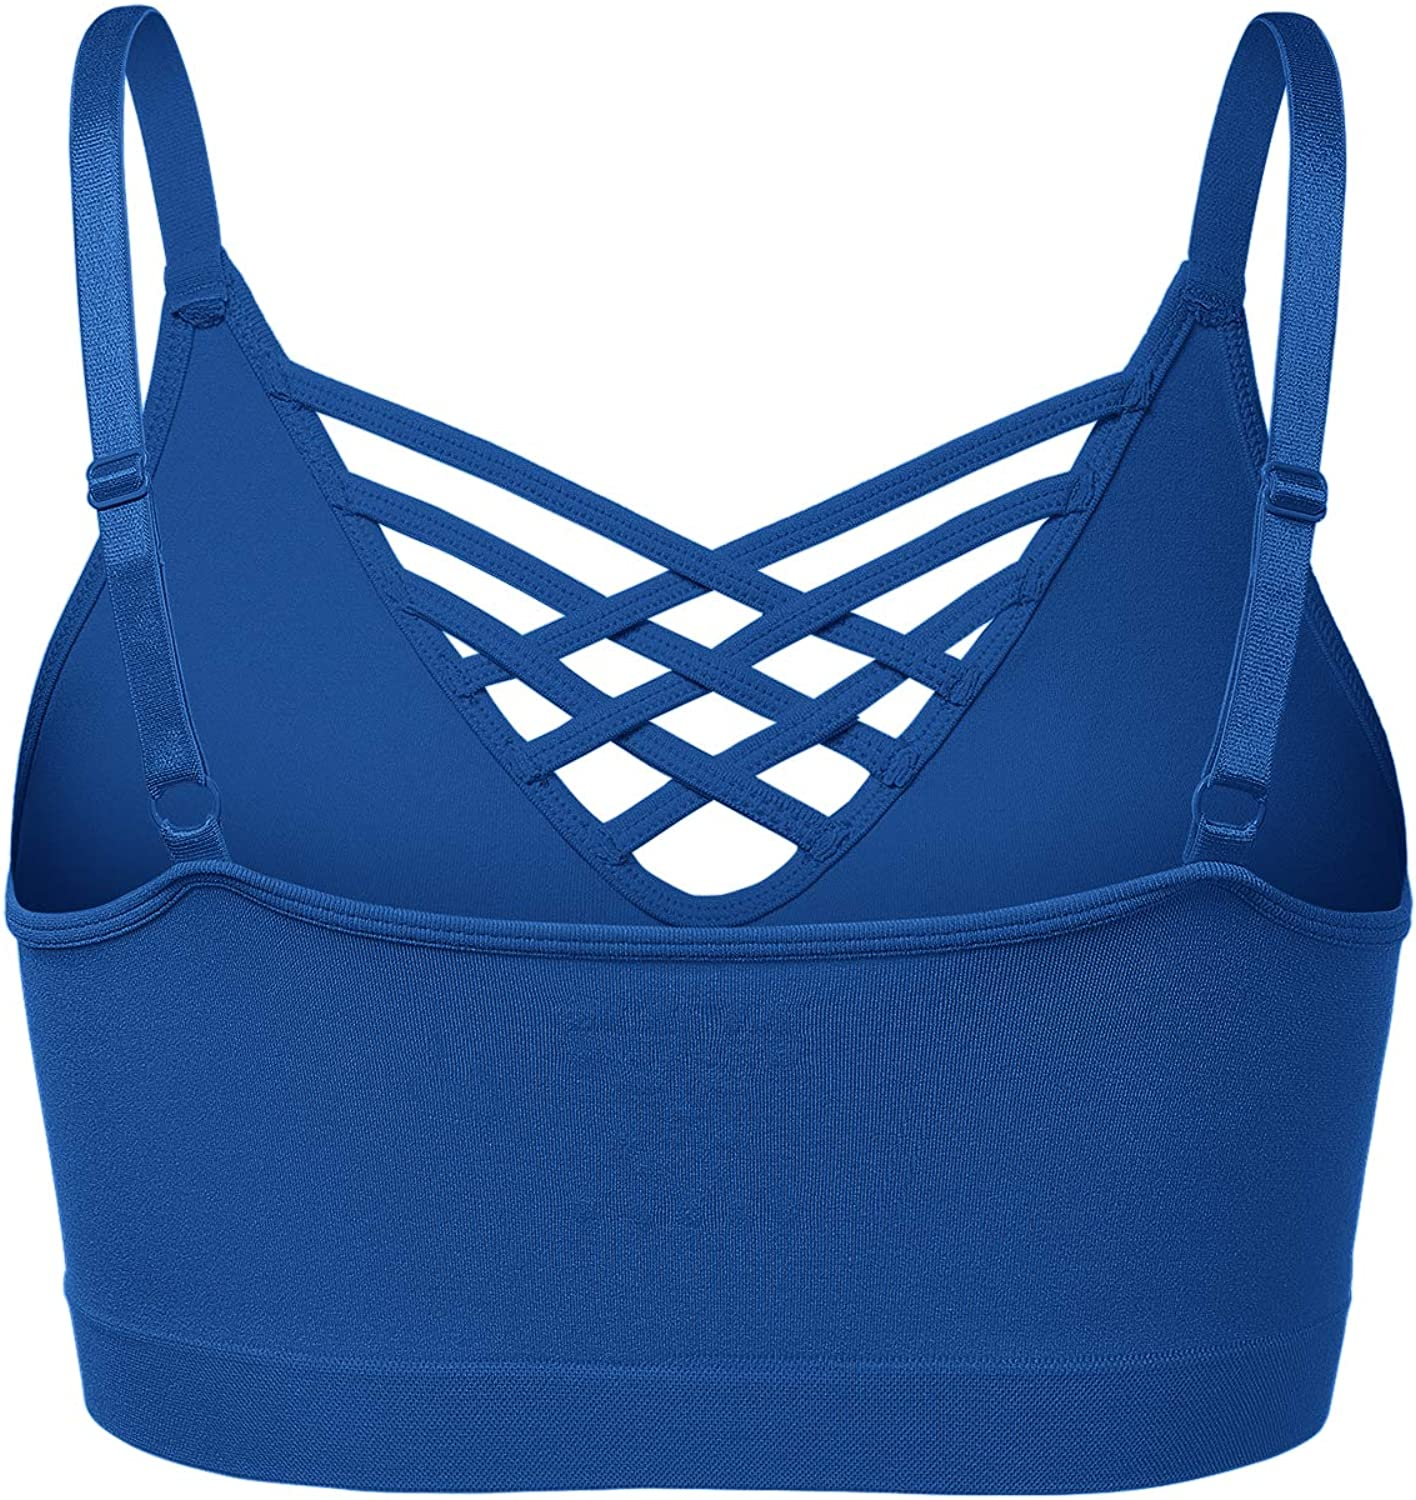 Womens Seamless Strappy Bralette Shapeware Adjustable Straps Tops